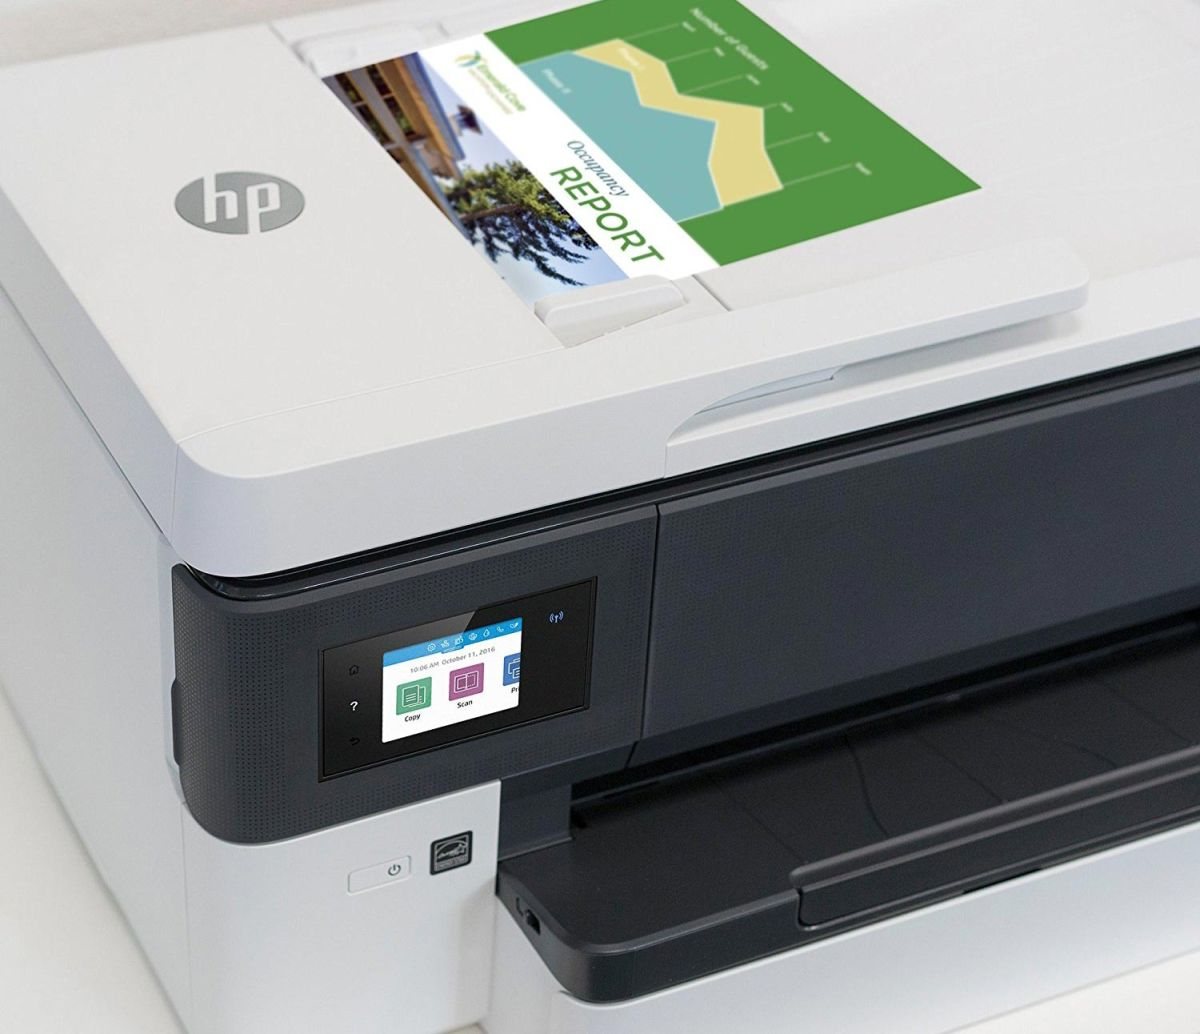 HP OfficeJet Pro 7720 Printer Review: Great Quality